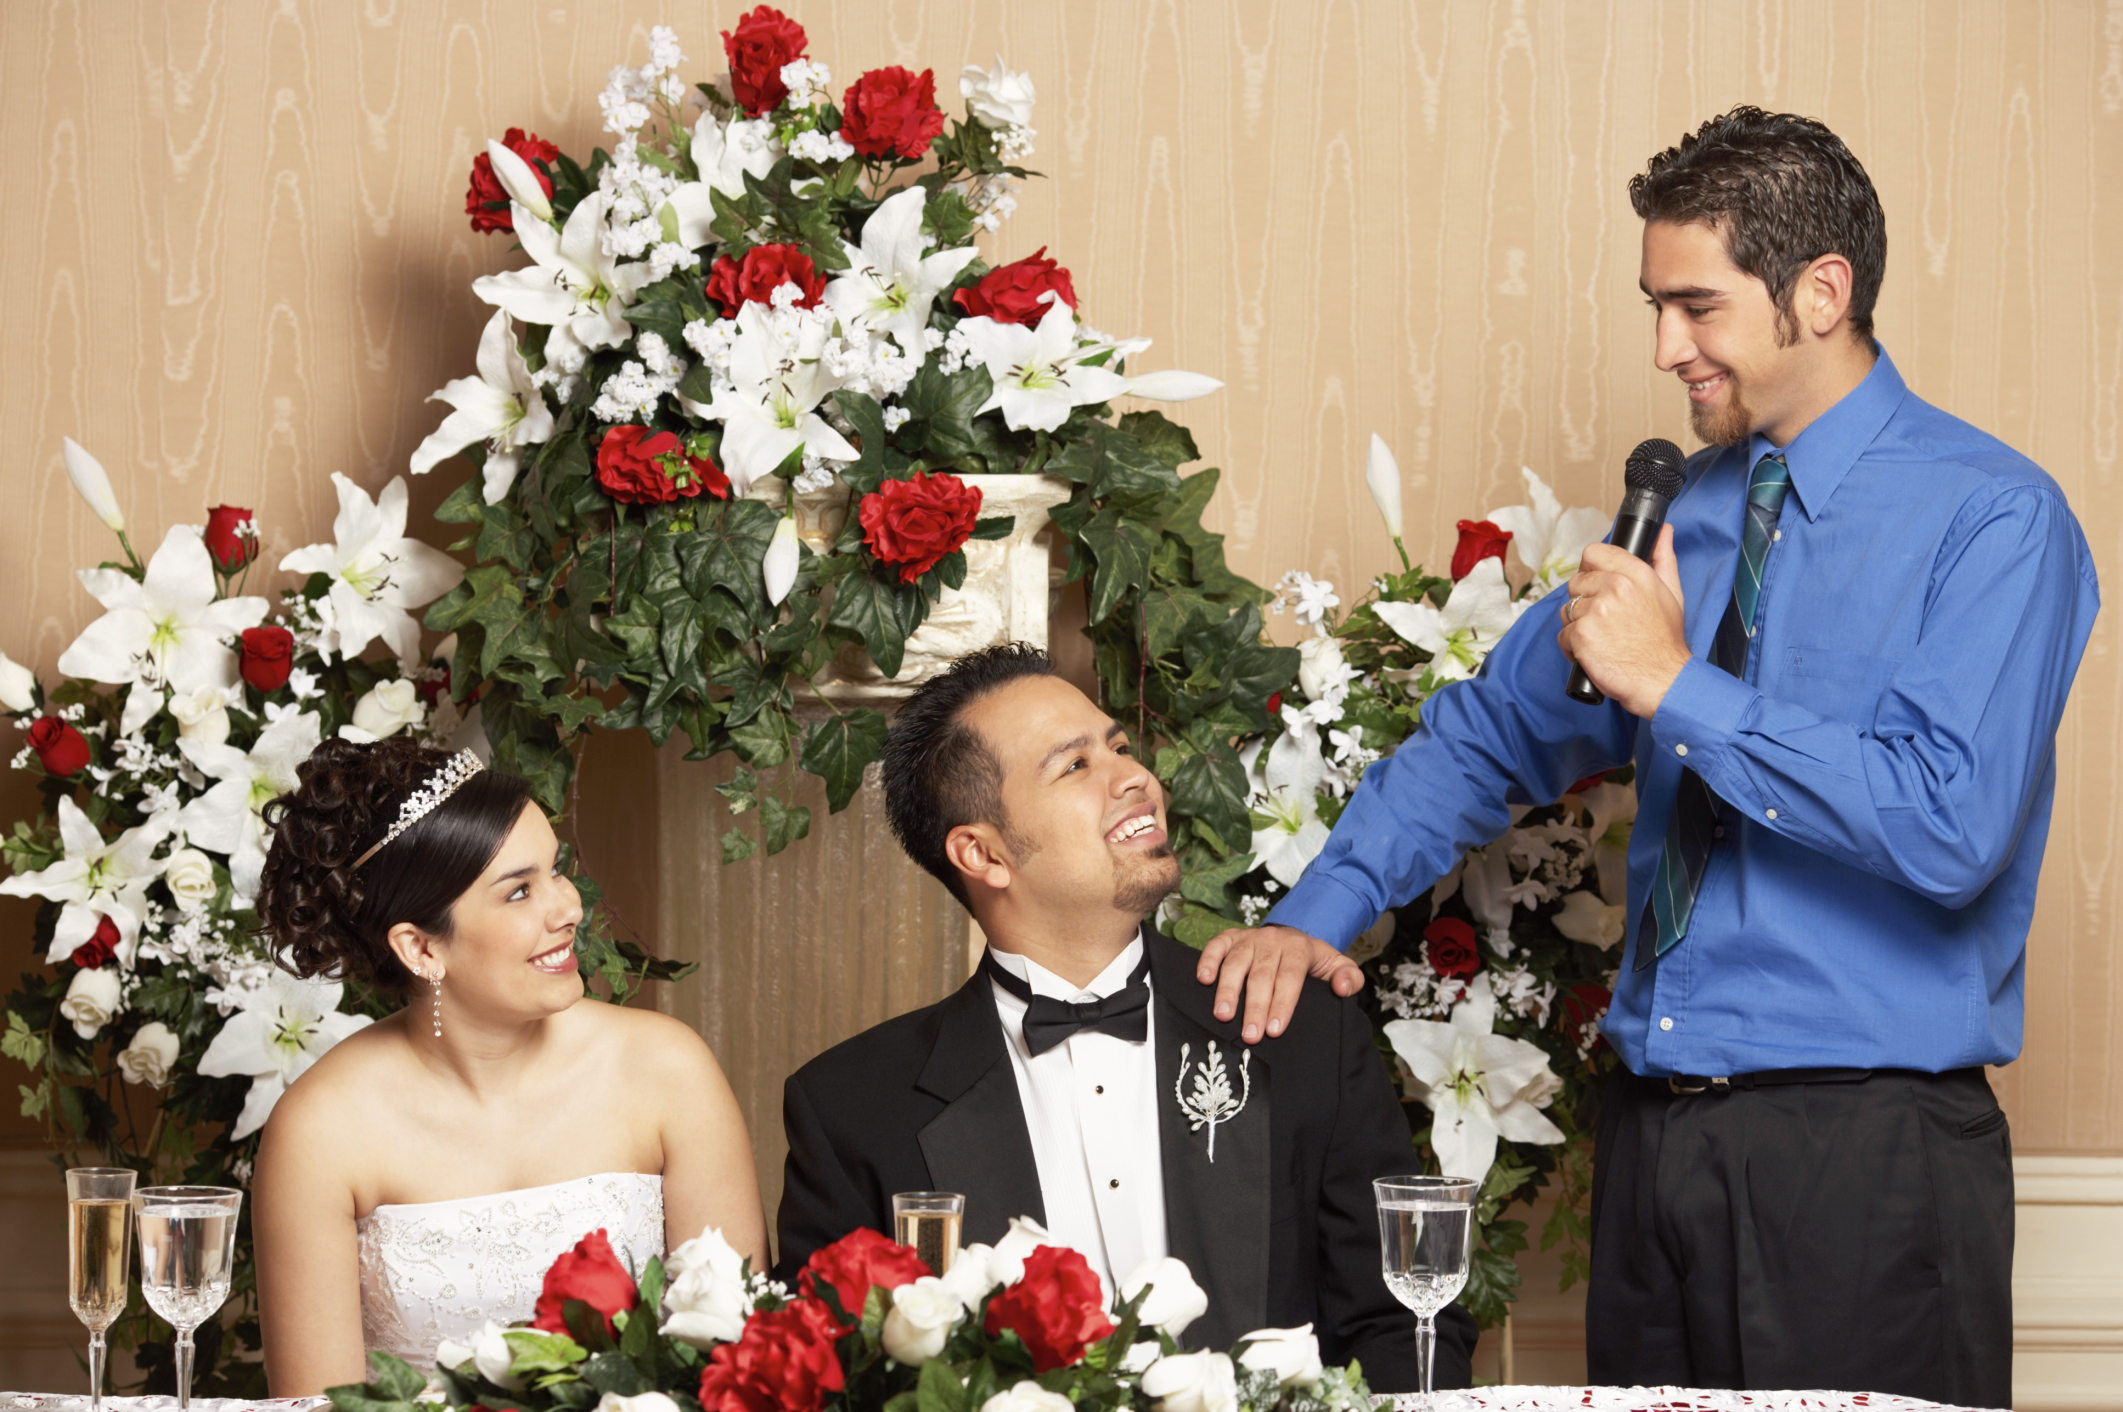 Best Man Role Articles Easy Weddings